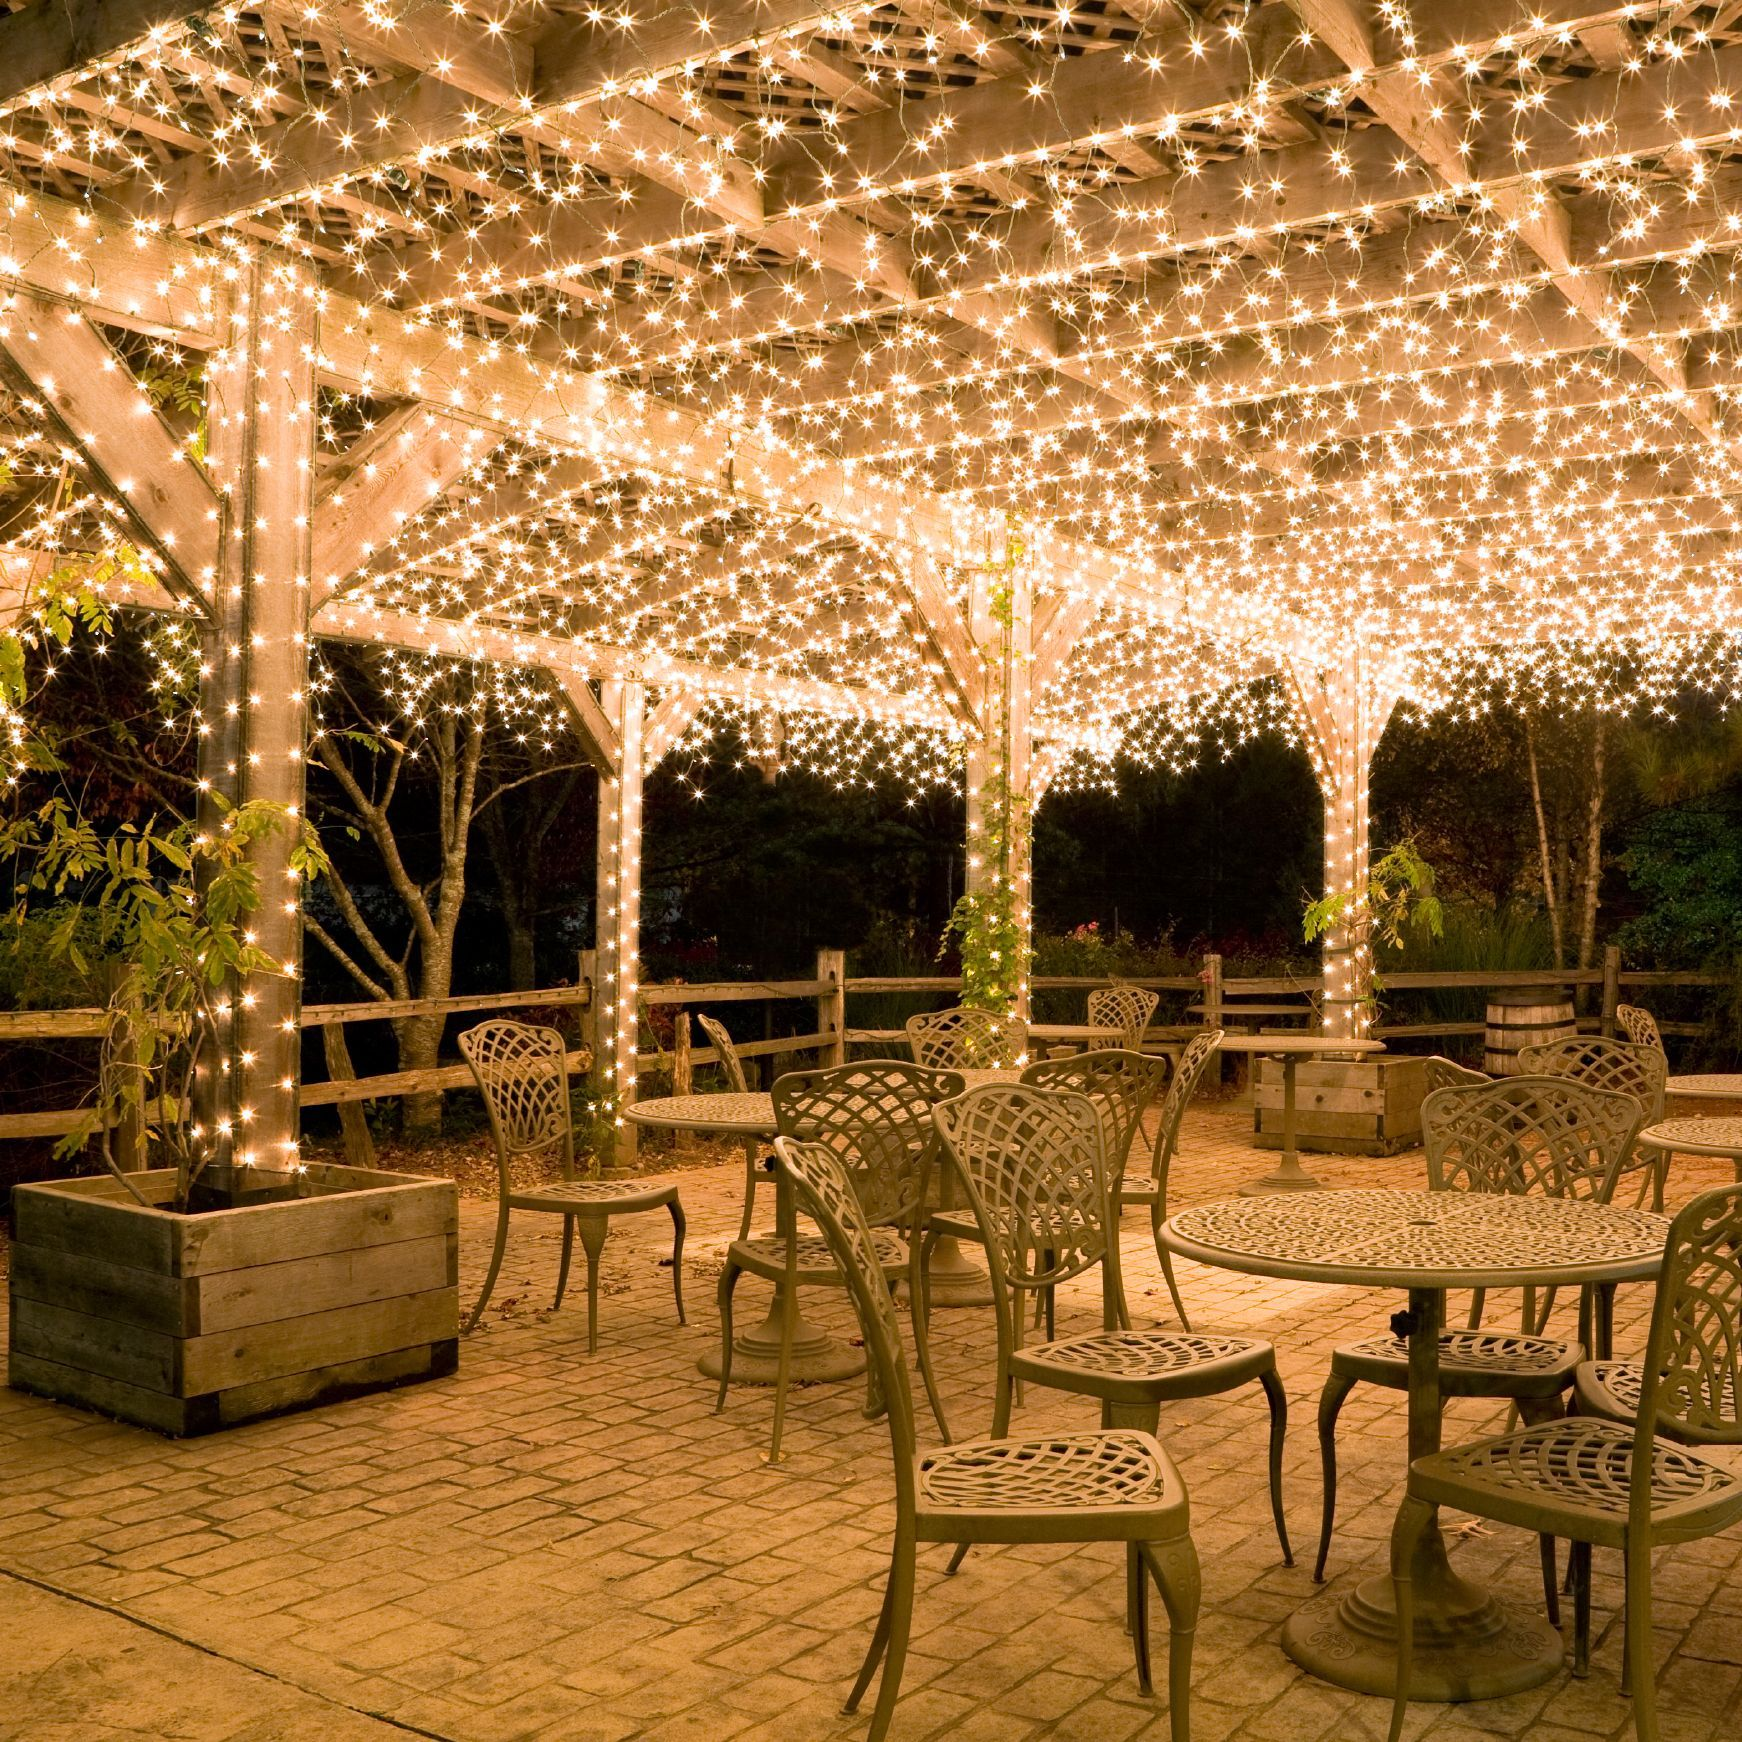 Hang White Icicle Lights To Create Magical Outdoor Lighting This Idea Works Well For Decks